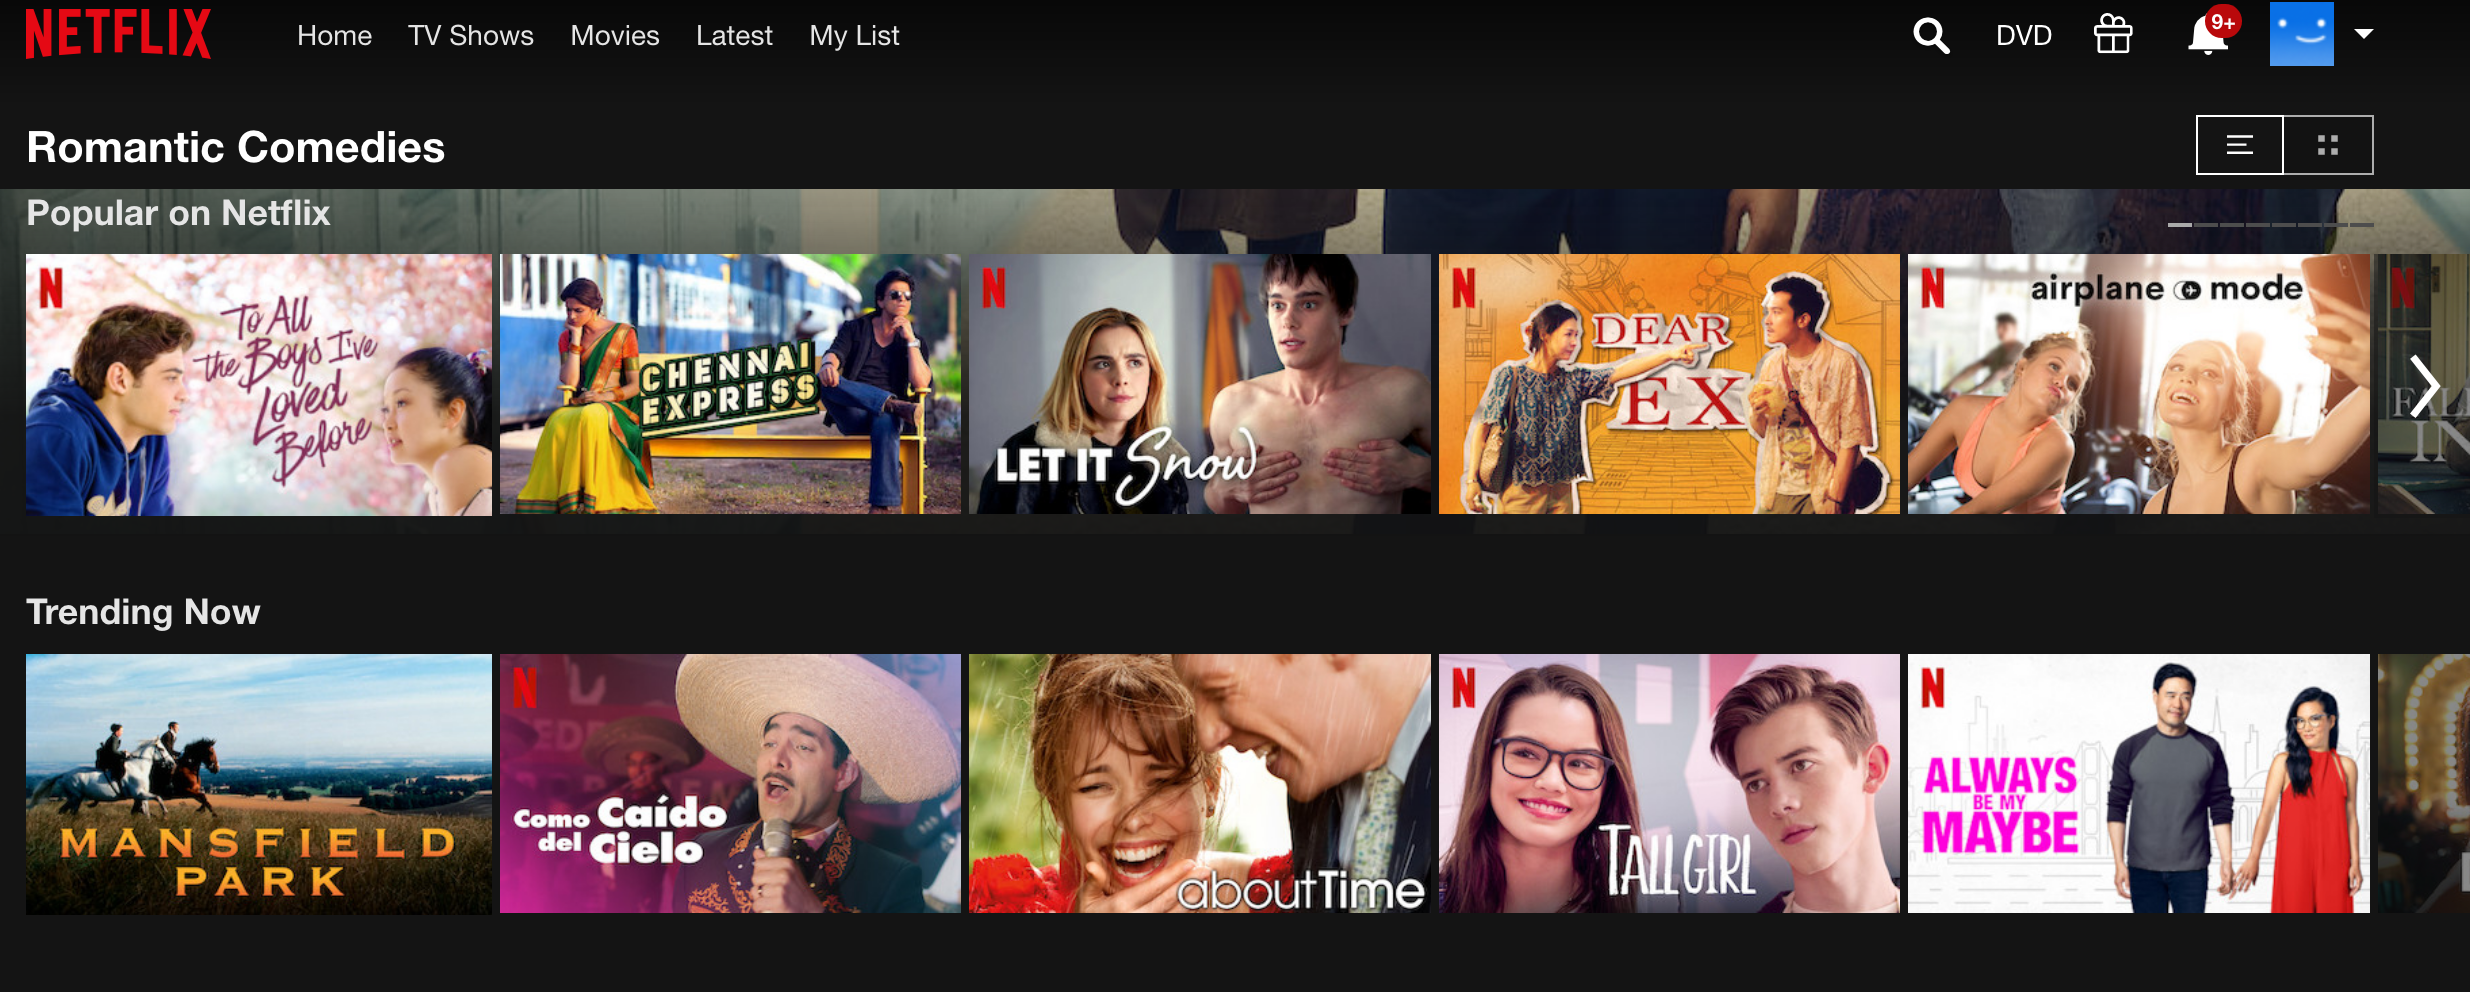 Author's screenshot of the Romantic Comedy category on Netflix